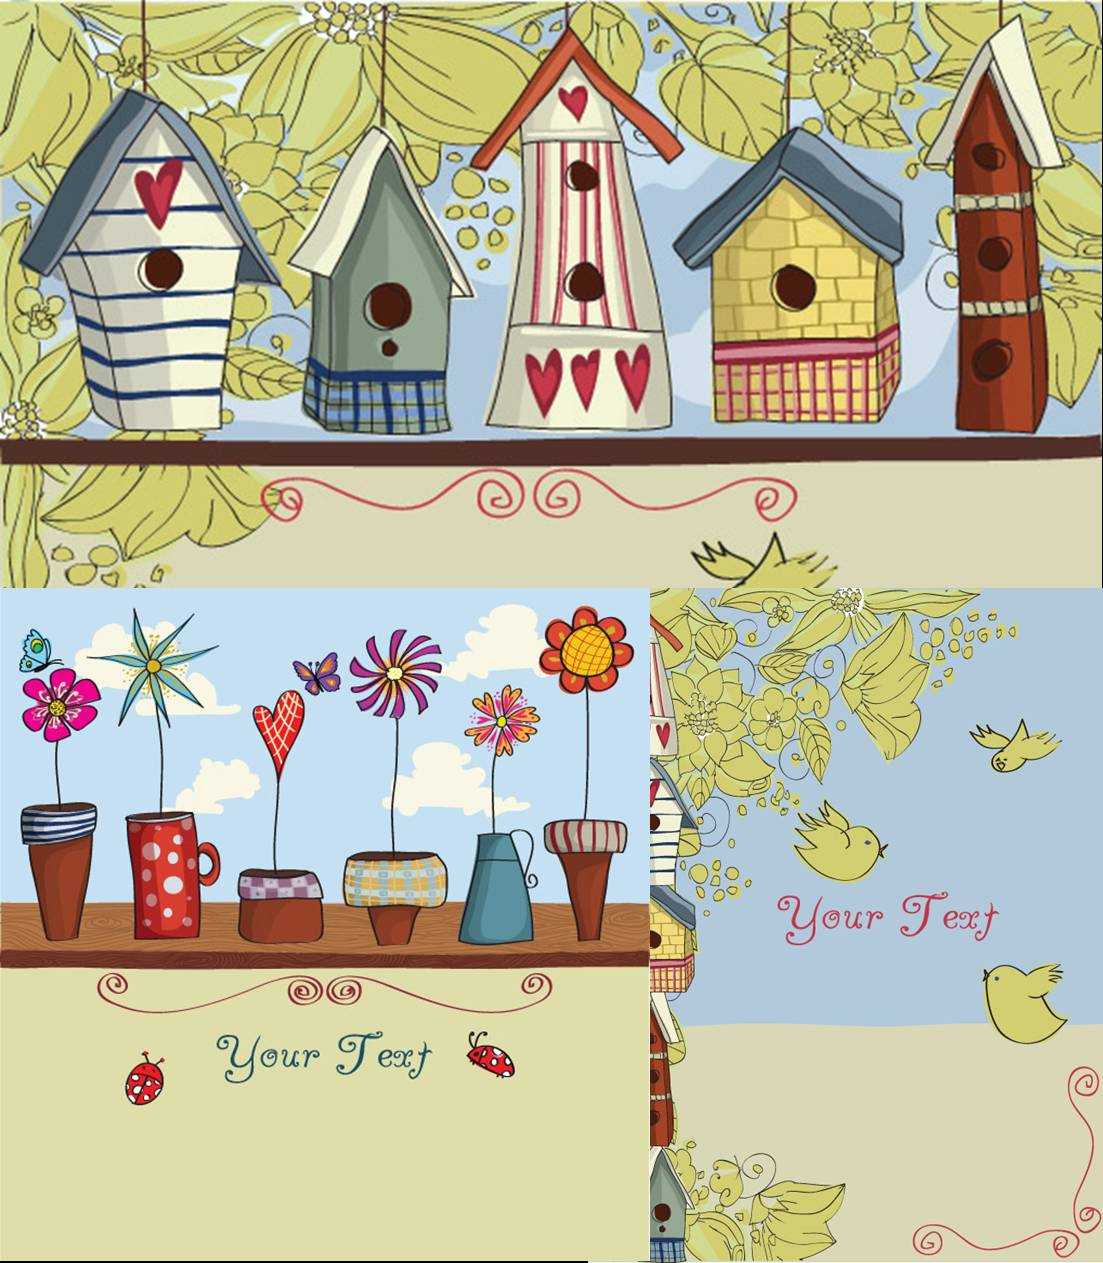 Free border cliparts download. Birdhouse clipart whimsical